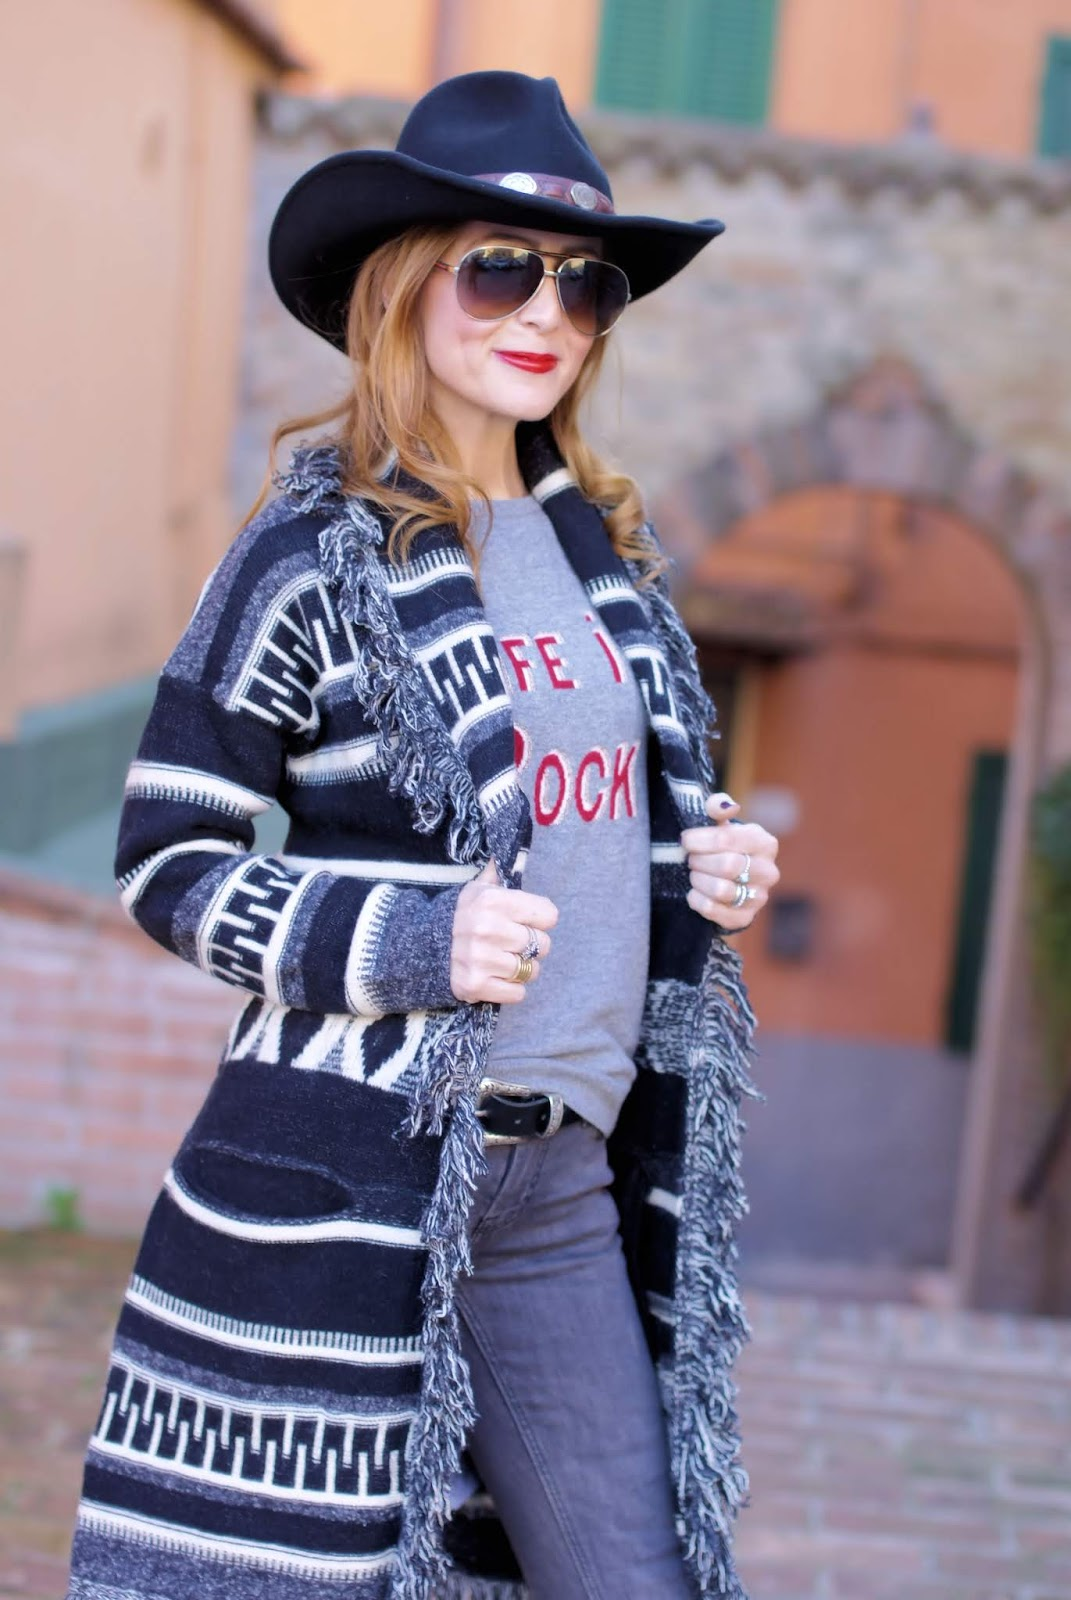 Fashion blogger country western: Stetson hat on Fashion and Cookies fashion blog, fashion blogger style